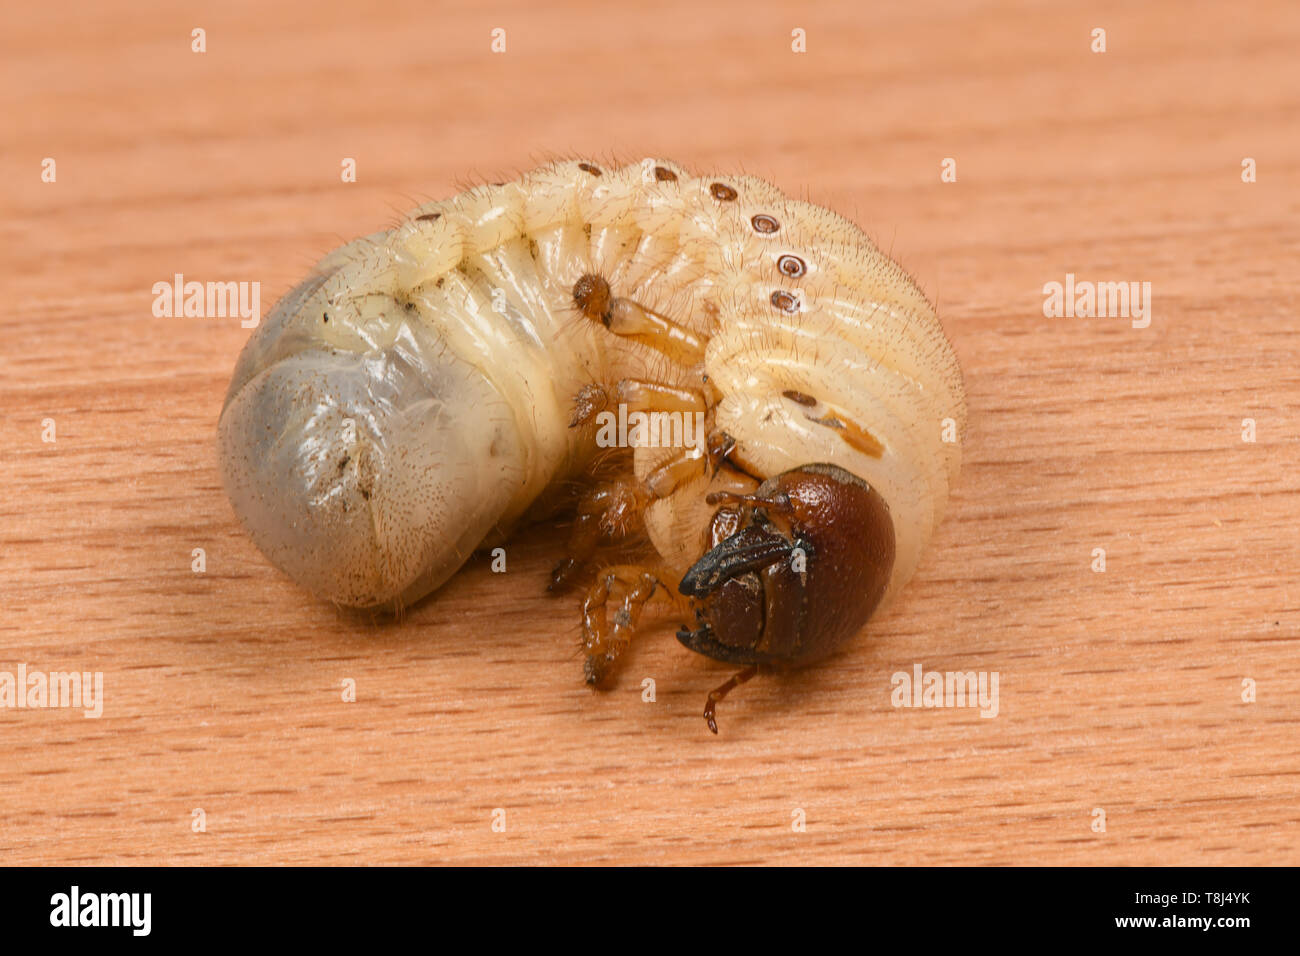 The Larvae Of The Rhinoceros Beetle Oryctes Nasicornis